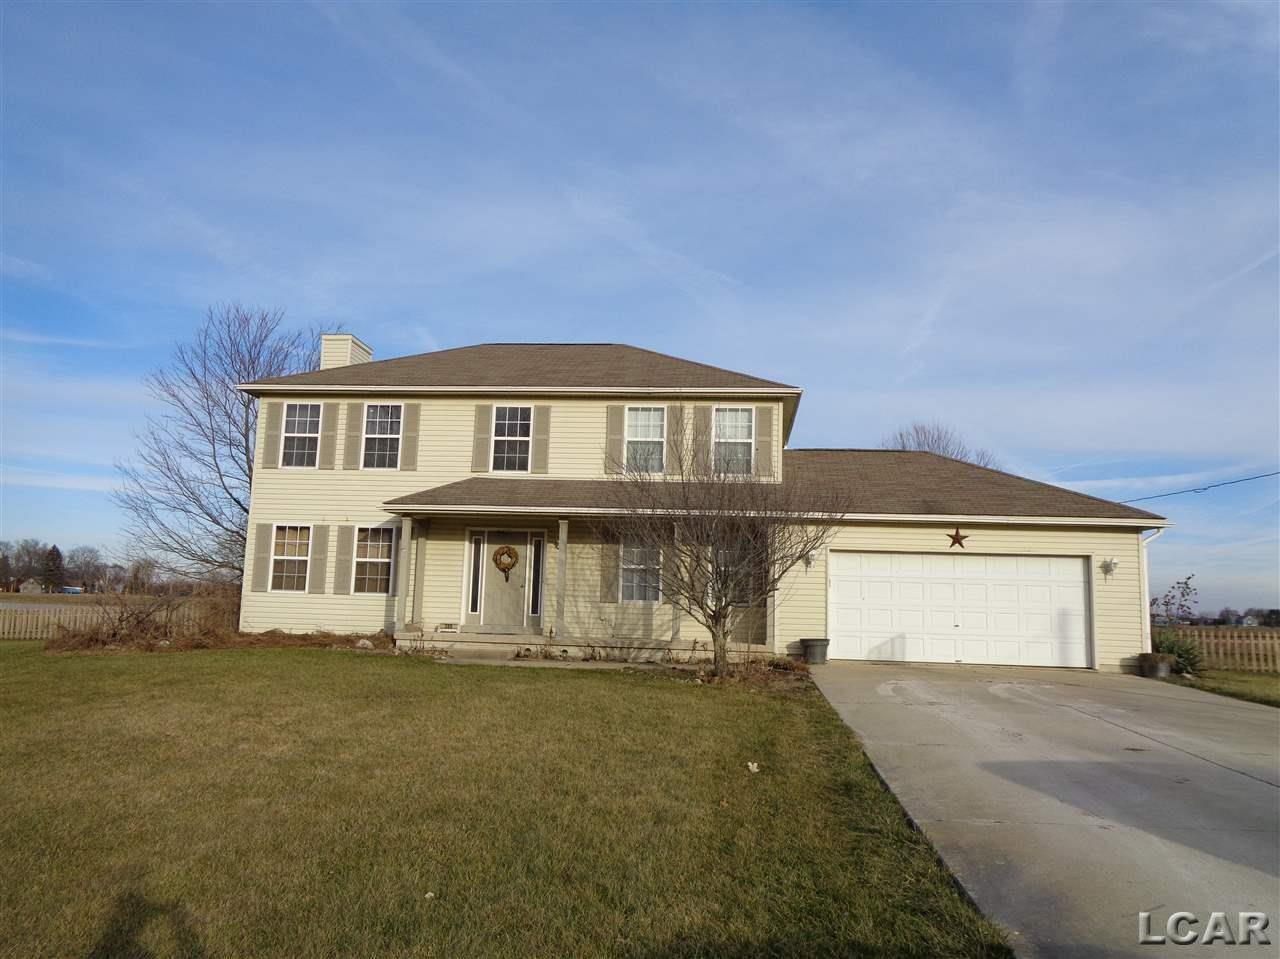 4 Bedrooms Bedrooms, 11 Rooms Rooms,2 BathroomsBathrooms,Residential,For Sale,County Line Hwy,50019226